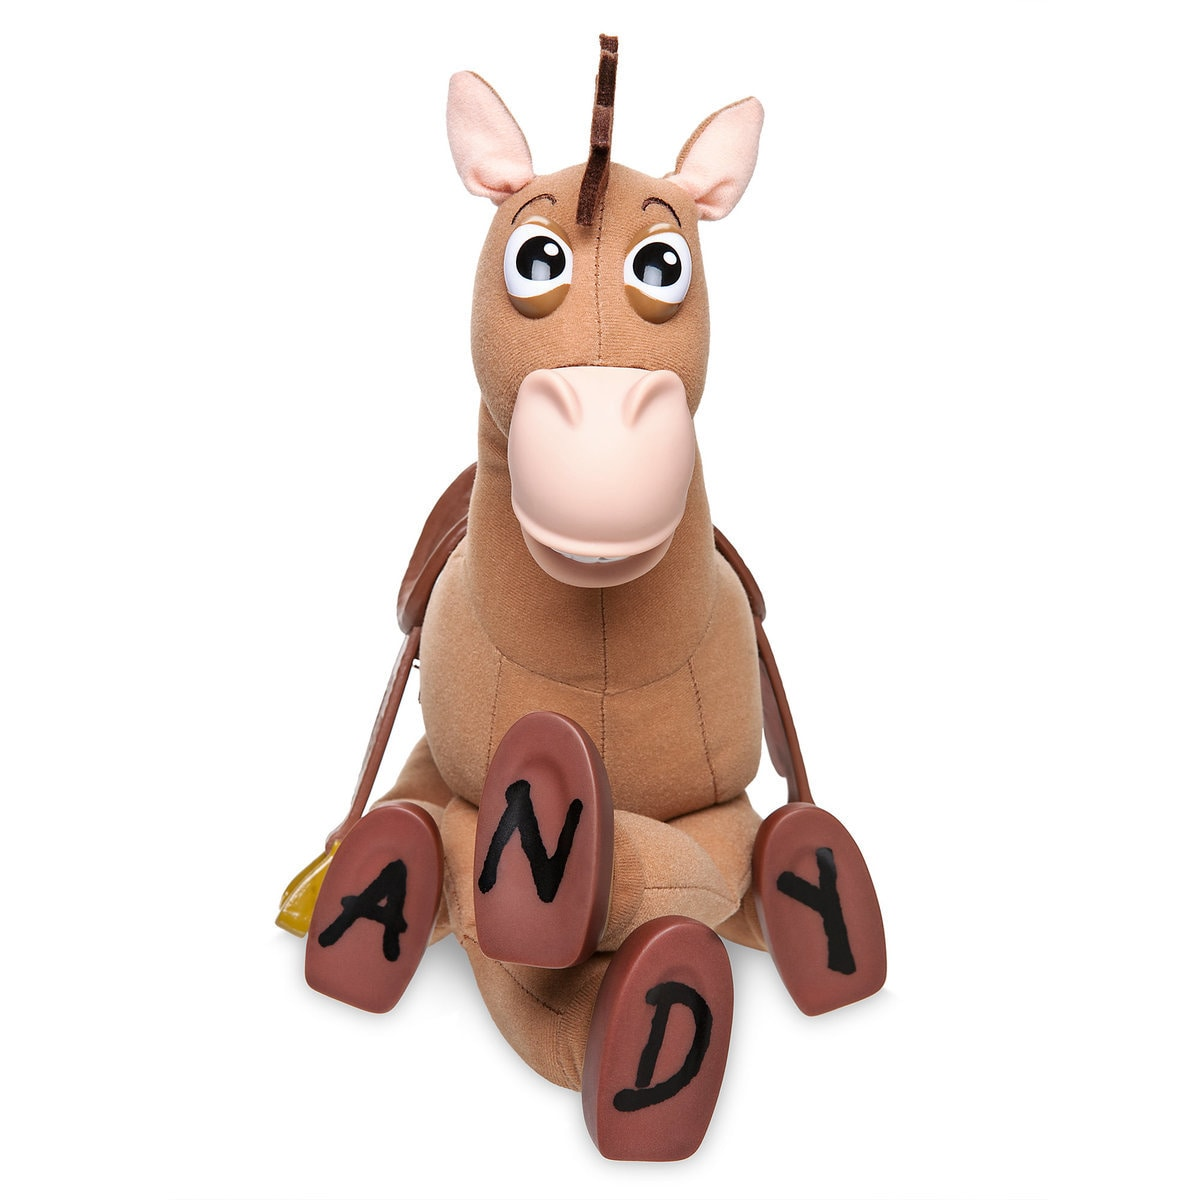 e1f835f513631d Product Image of Bullseye Plush Figure with Sound - Toy Story   1